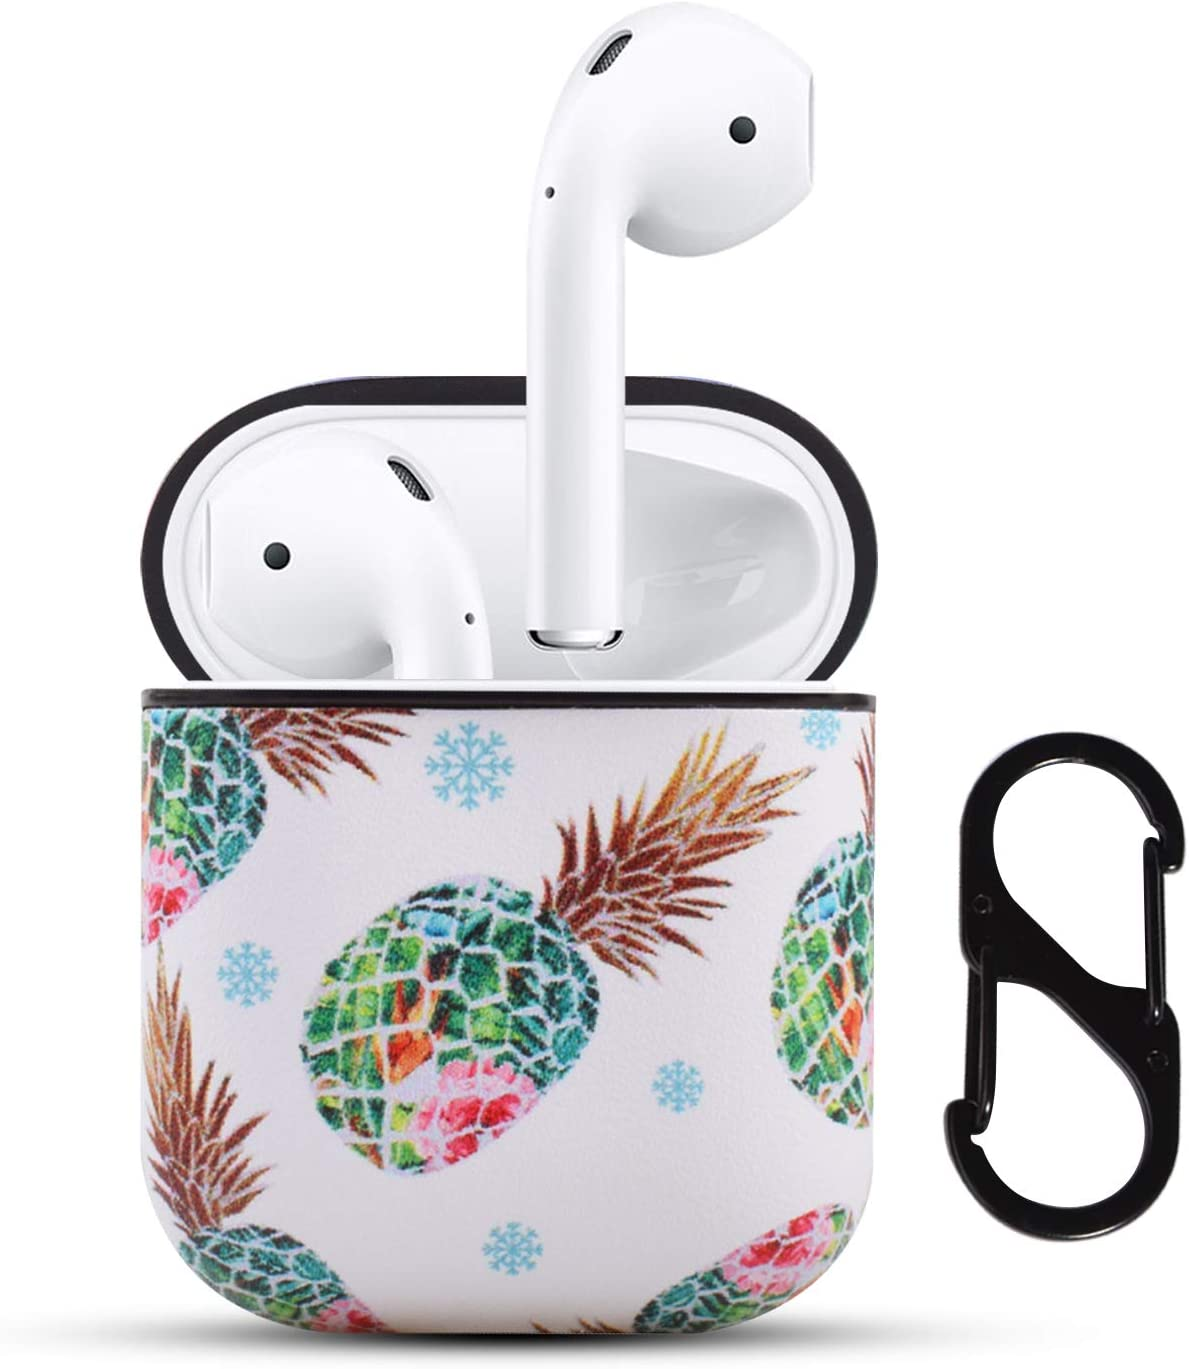 HIDAHE AirPods Case,AirPods 2 Case, AirPods Cover Cute Floral Pineapple Pattern Leather AirPod Accessories Kit Skin for Women Kid Compatiable with Apple AirPods 1st/2nd Charging Case, Green Pineapple